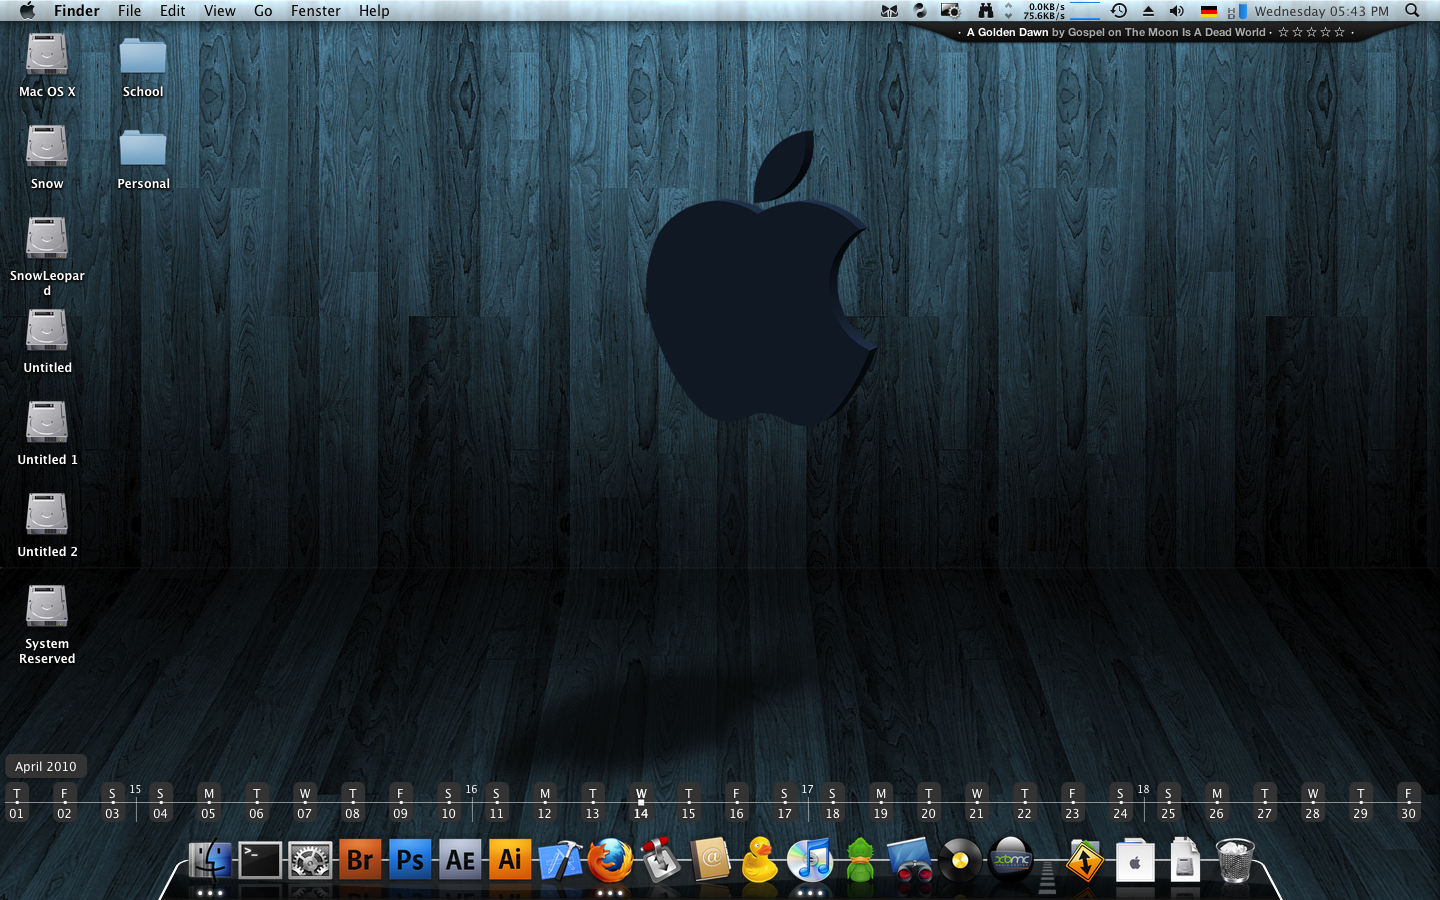 Mac Os X Screenshot April 2010 By Forbore